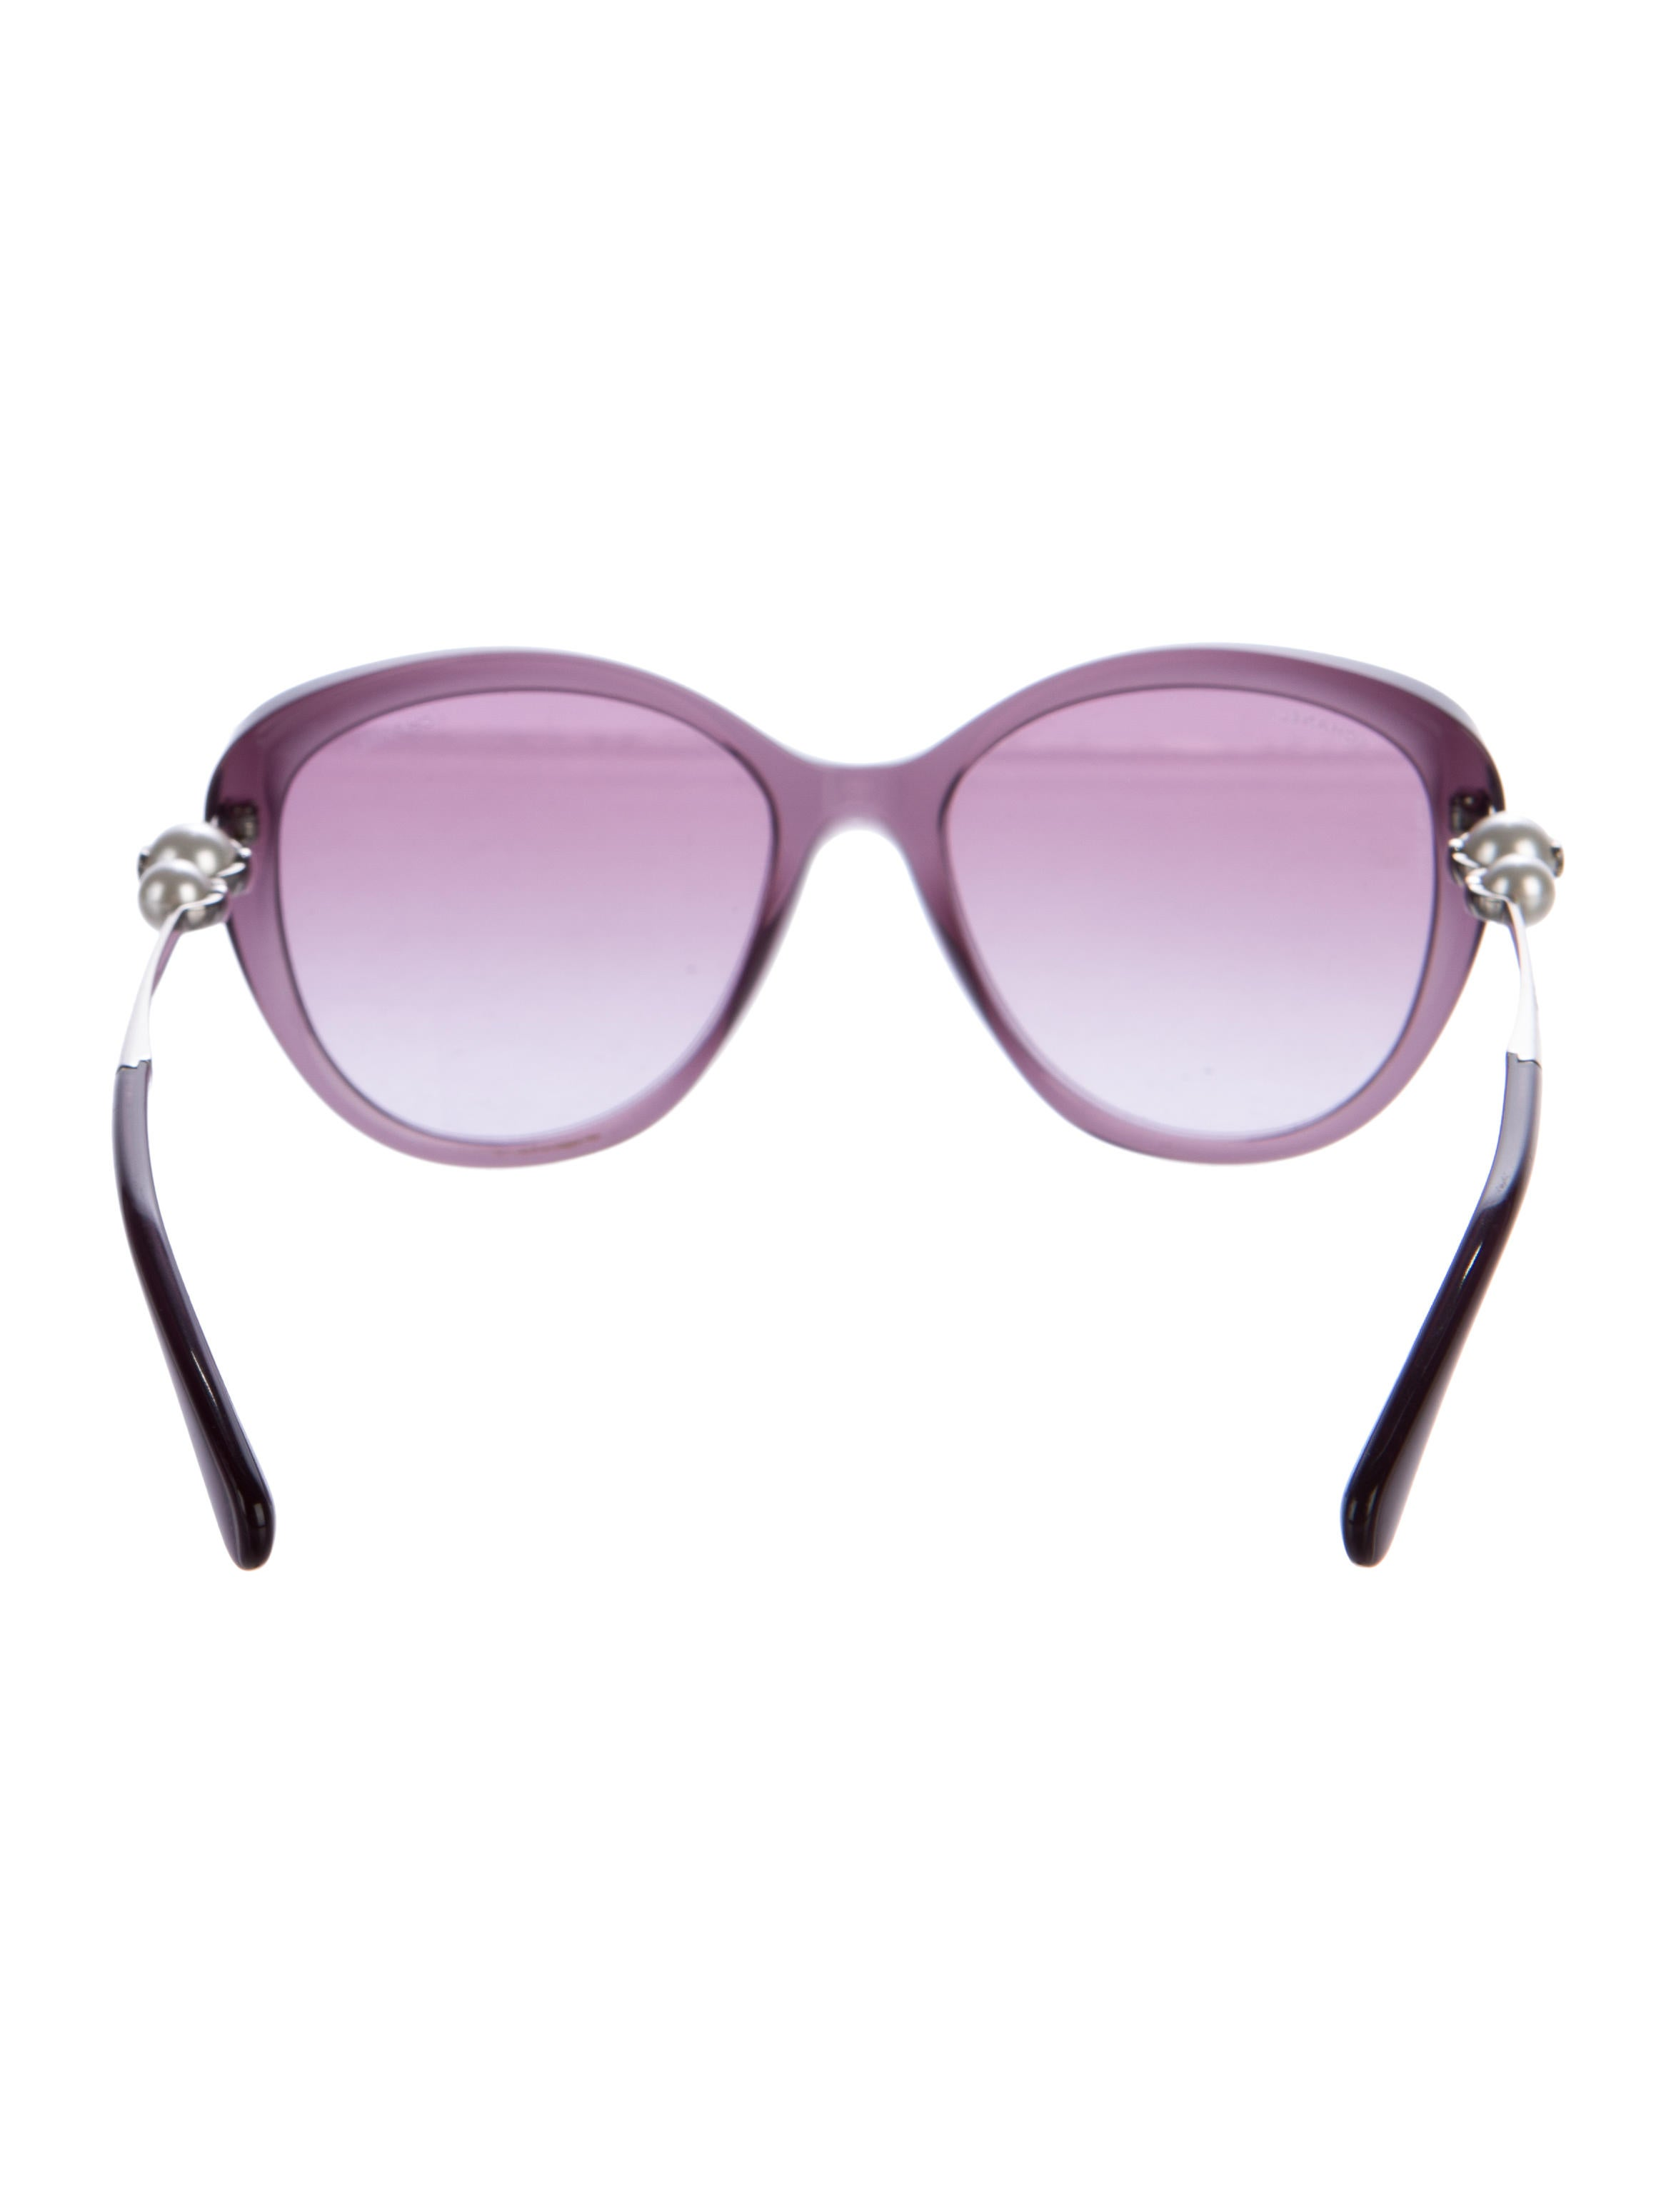 Chanel Erfly Acetate Sunglasses  chanel erfly pearl sunglasses accessories cha143992 the